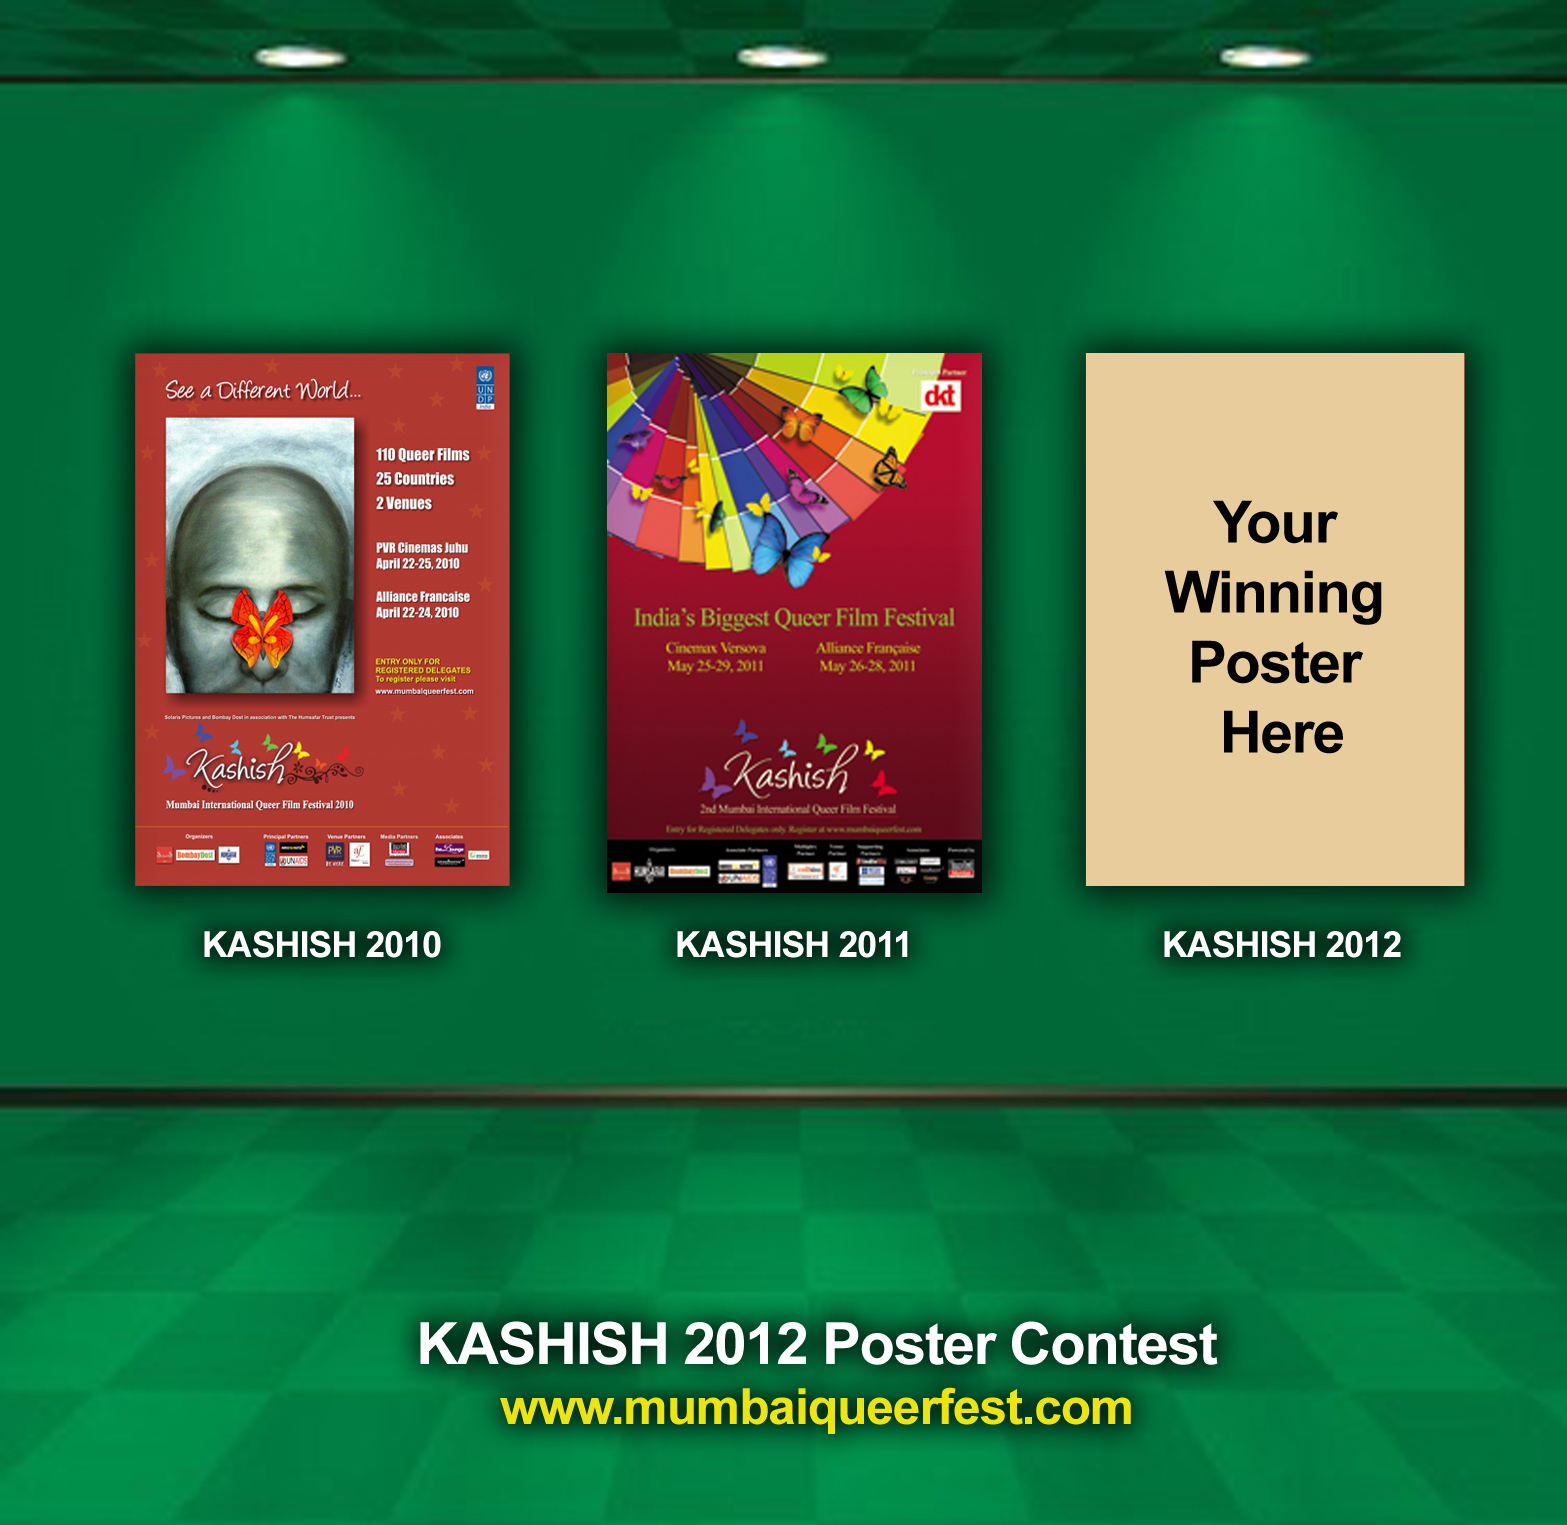 Kashish2012 poster contest